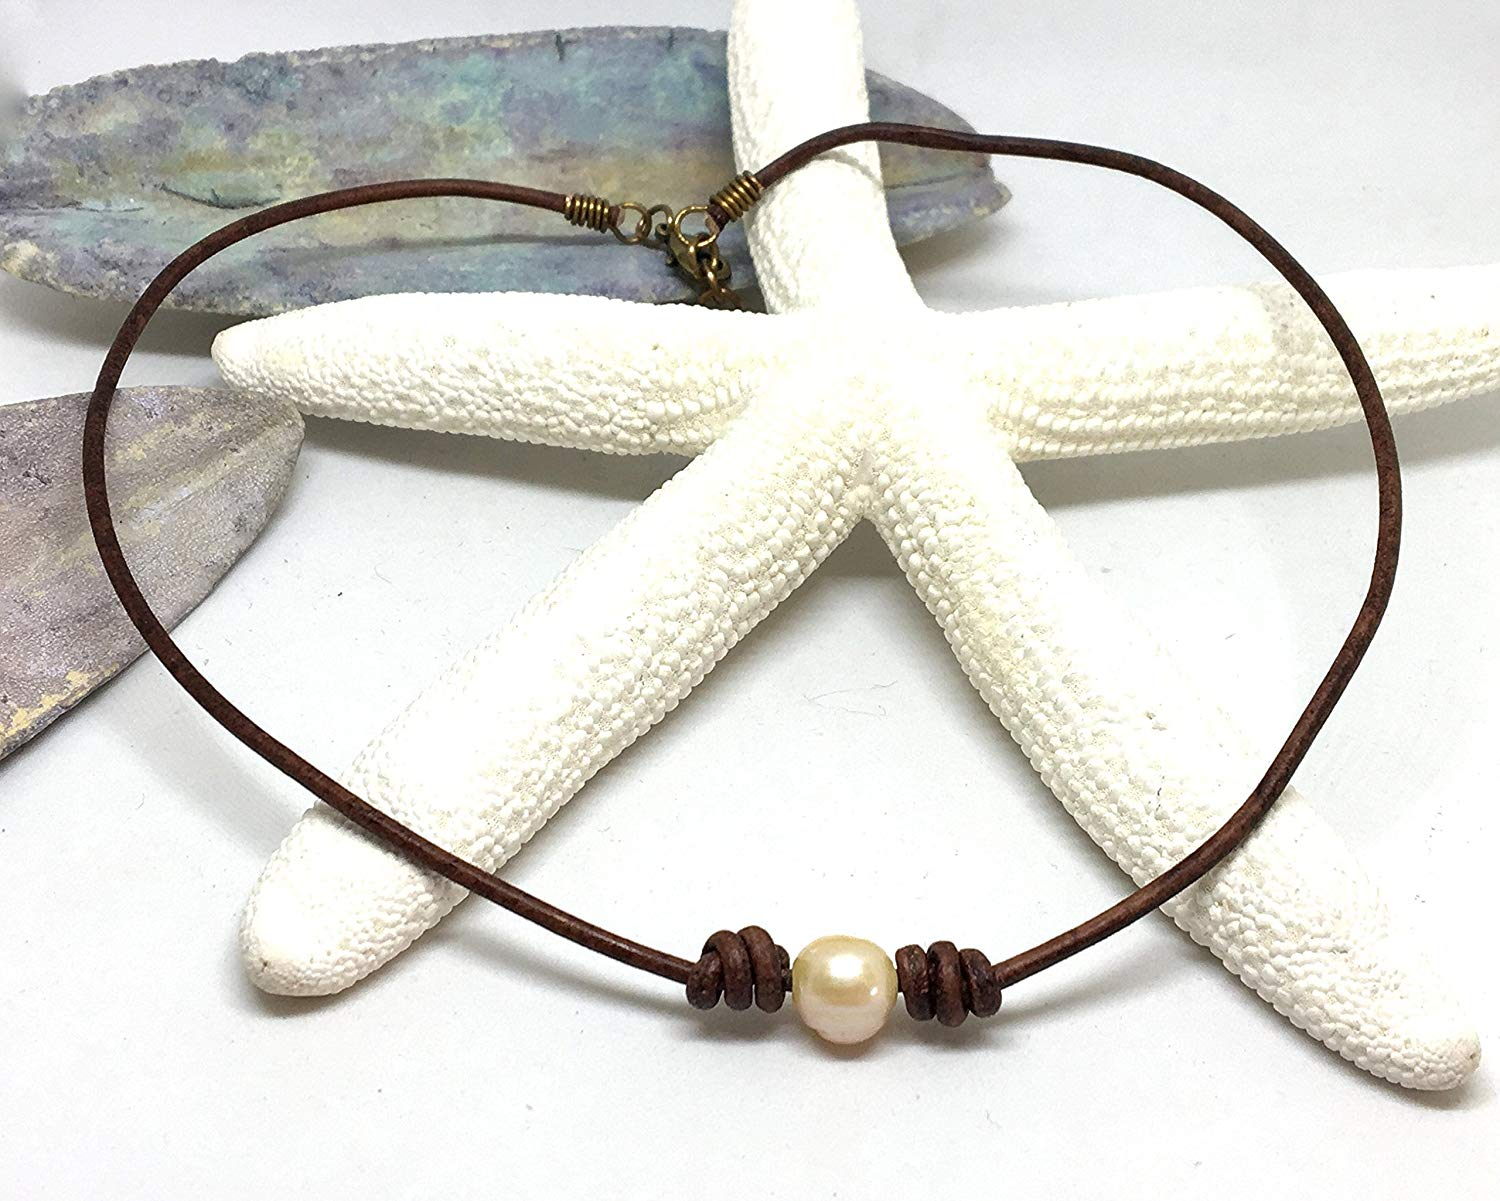 Leather Pearl Necklace, Freshwater Pearl, Pearl Choker, Boho Necklace, Gift for Her, Choker Necklace, Pearl Jewelry,Choker, Leather Necklace